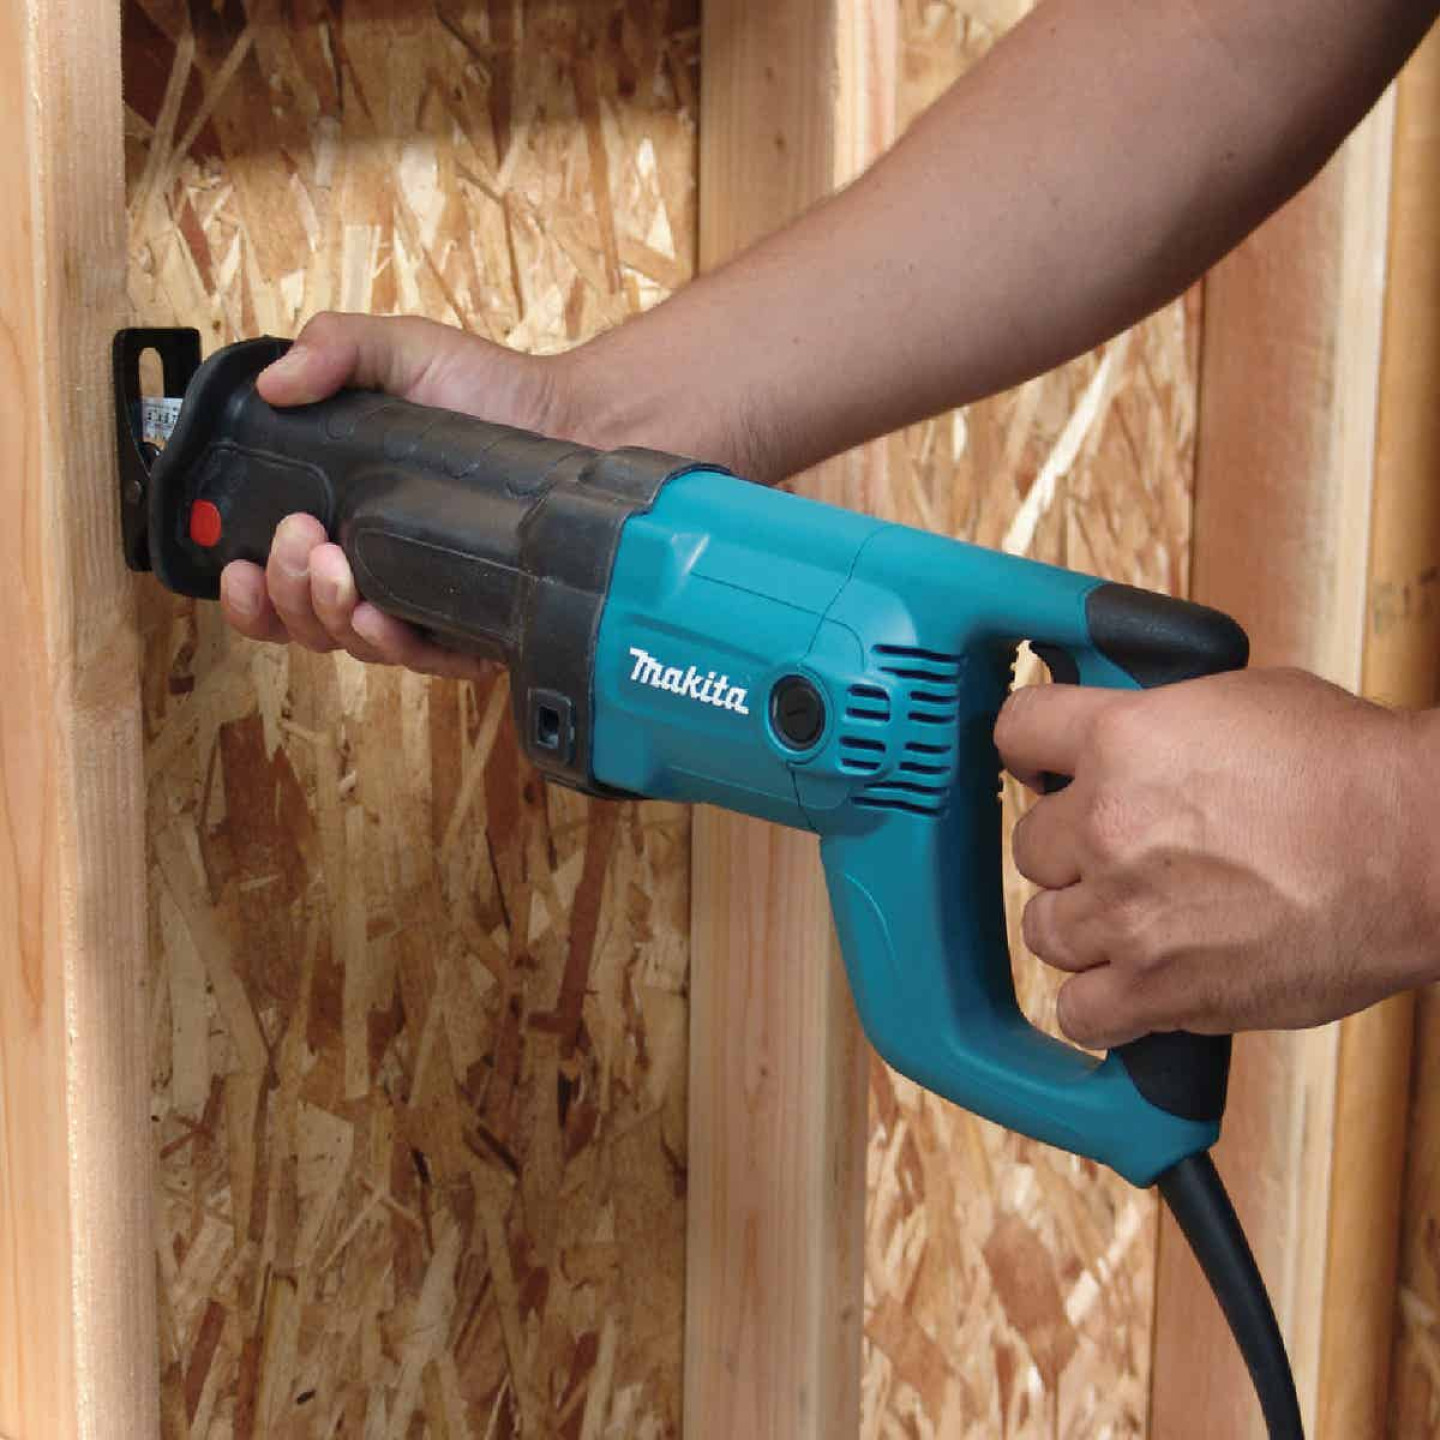 Makita 12-Amp Reciprocating Saw Image 3